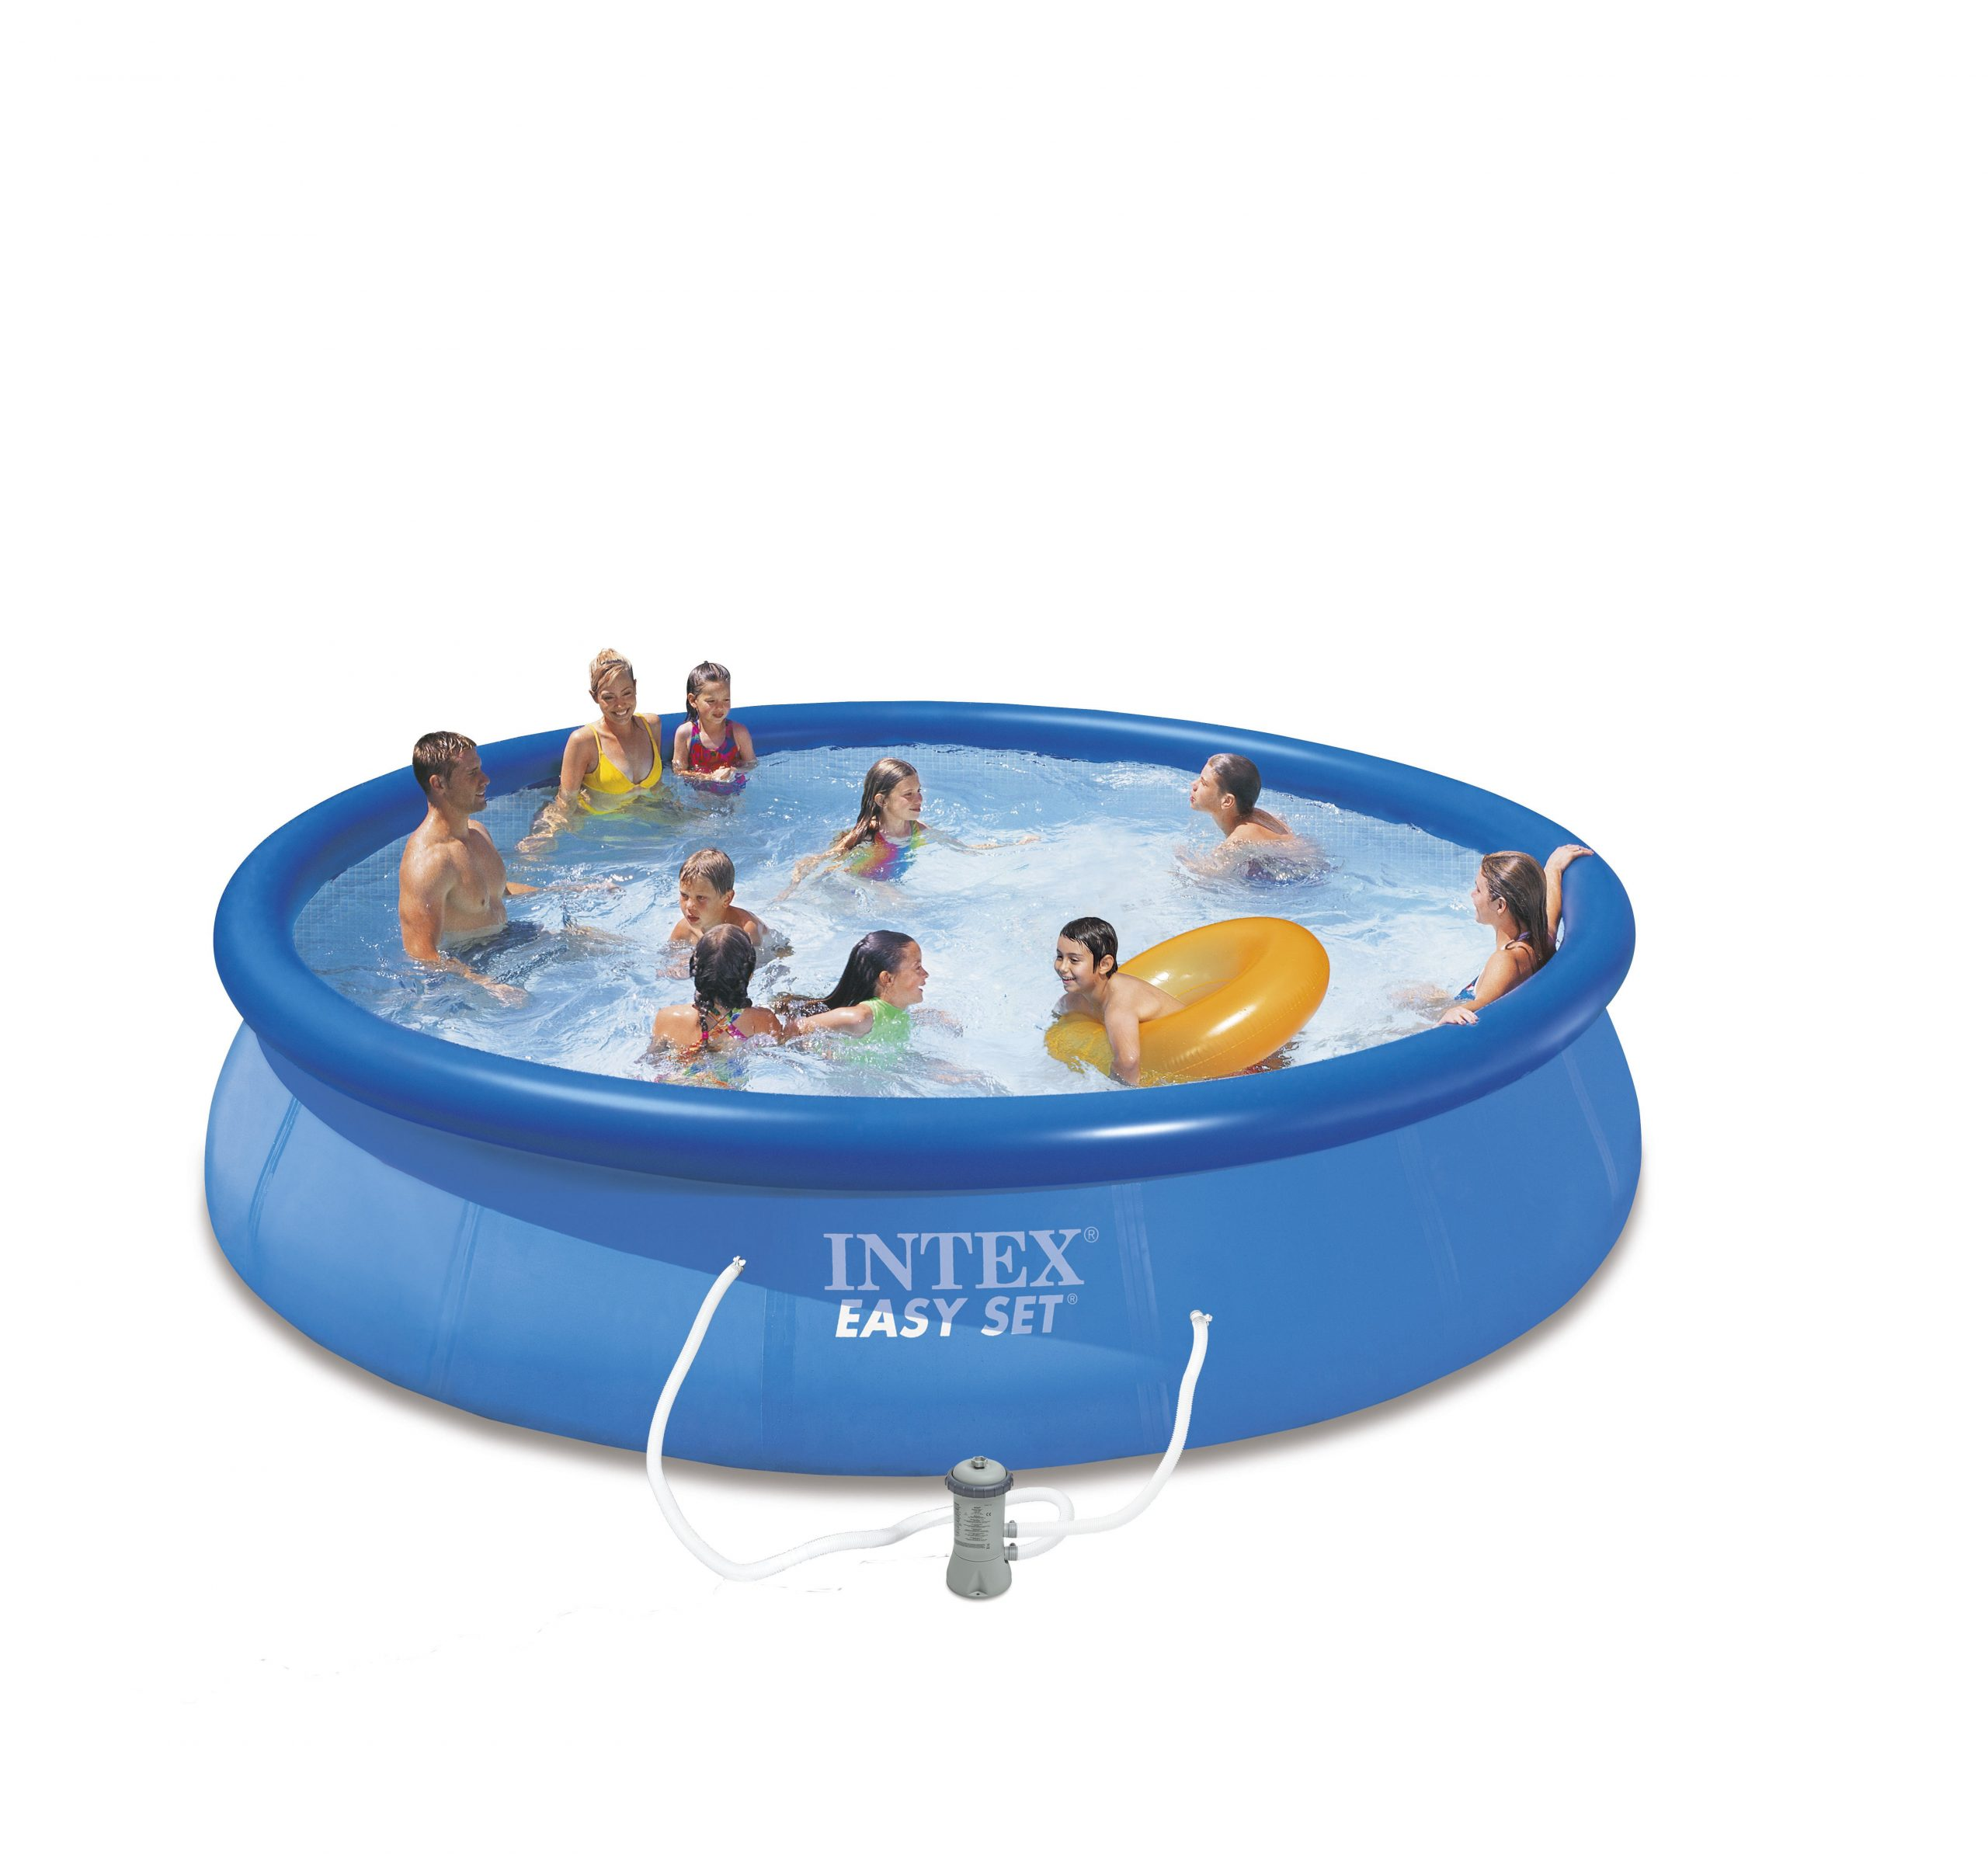 Piscine Autoportante Gonflable Easy Set Intex Diam.4.57 M X H.0.84 M serapportantà Piscines Gonflables